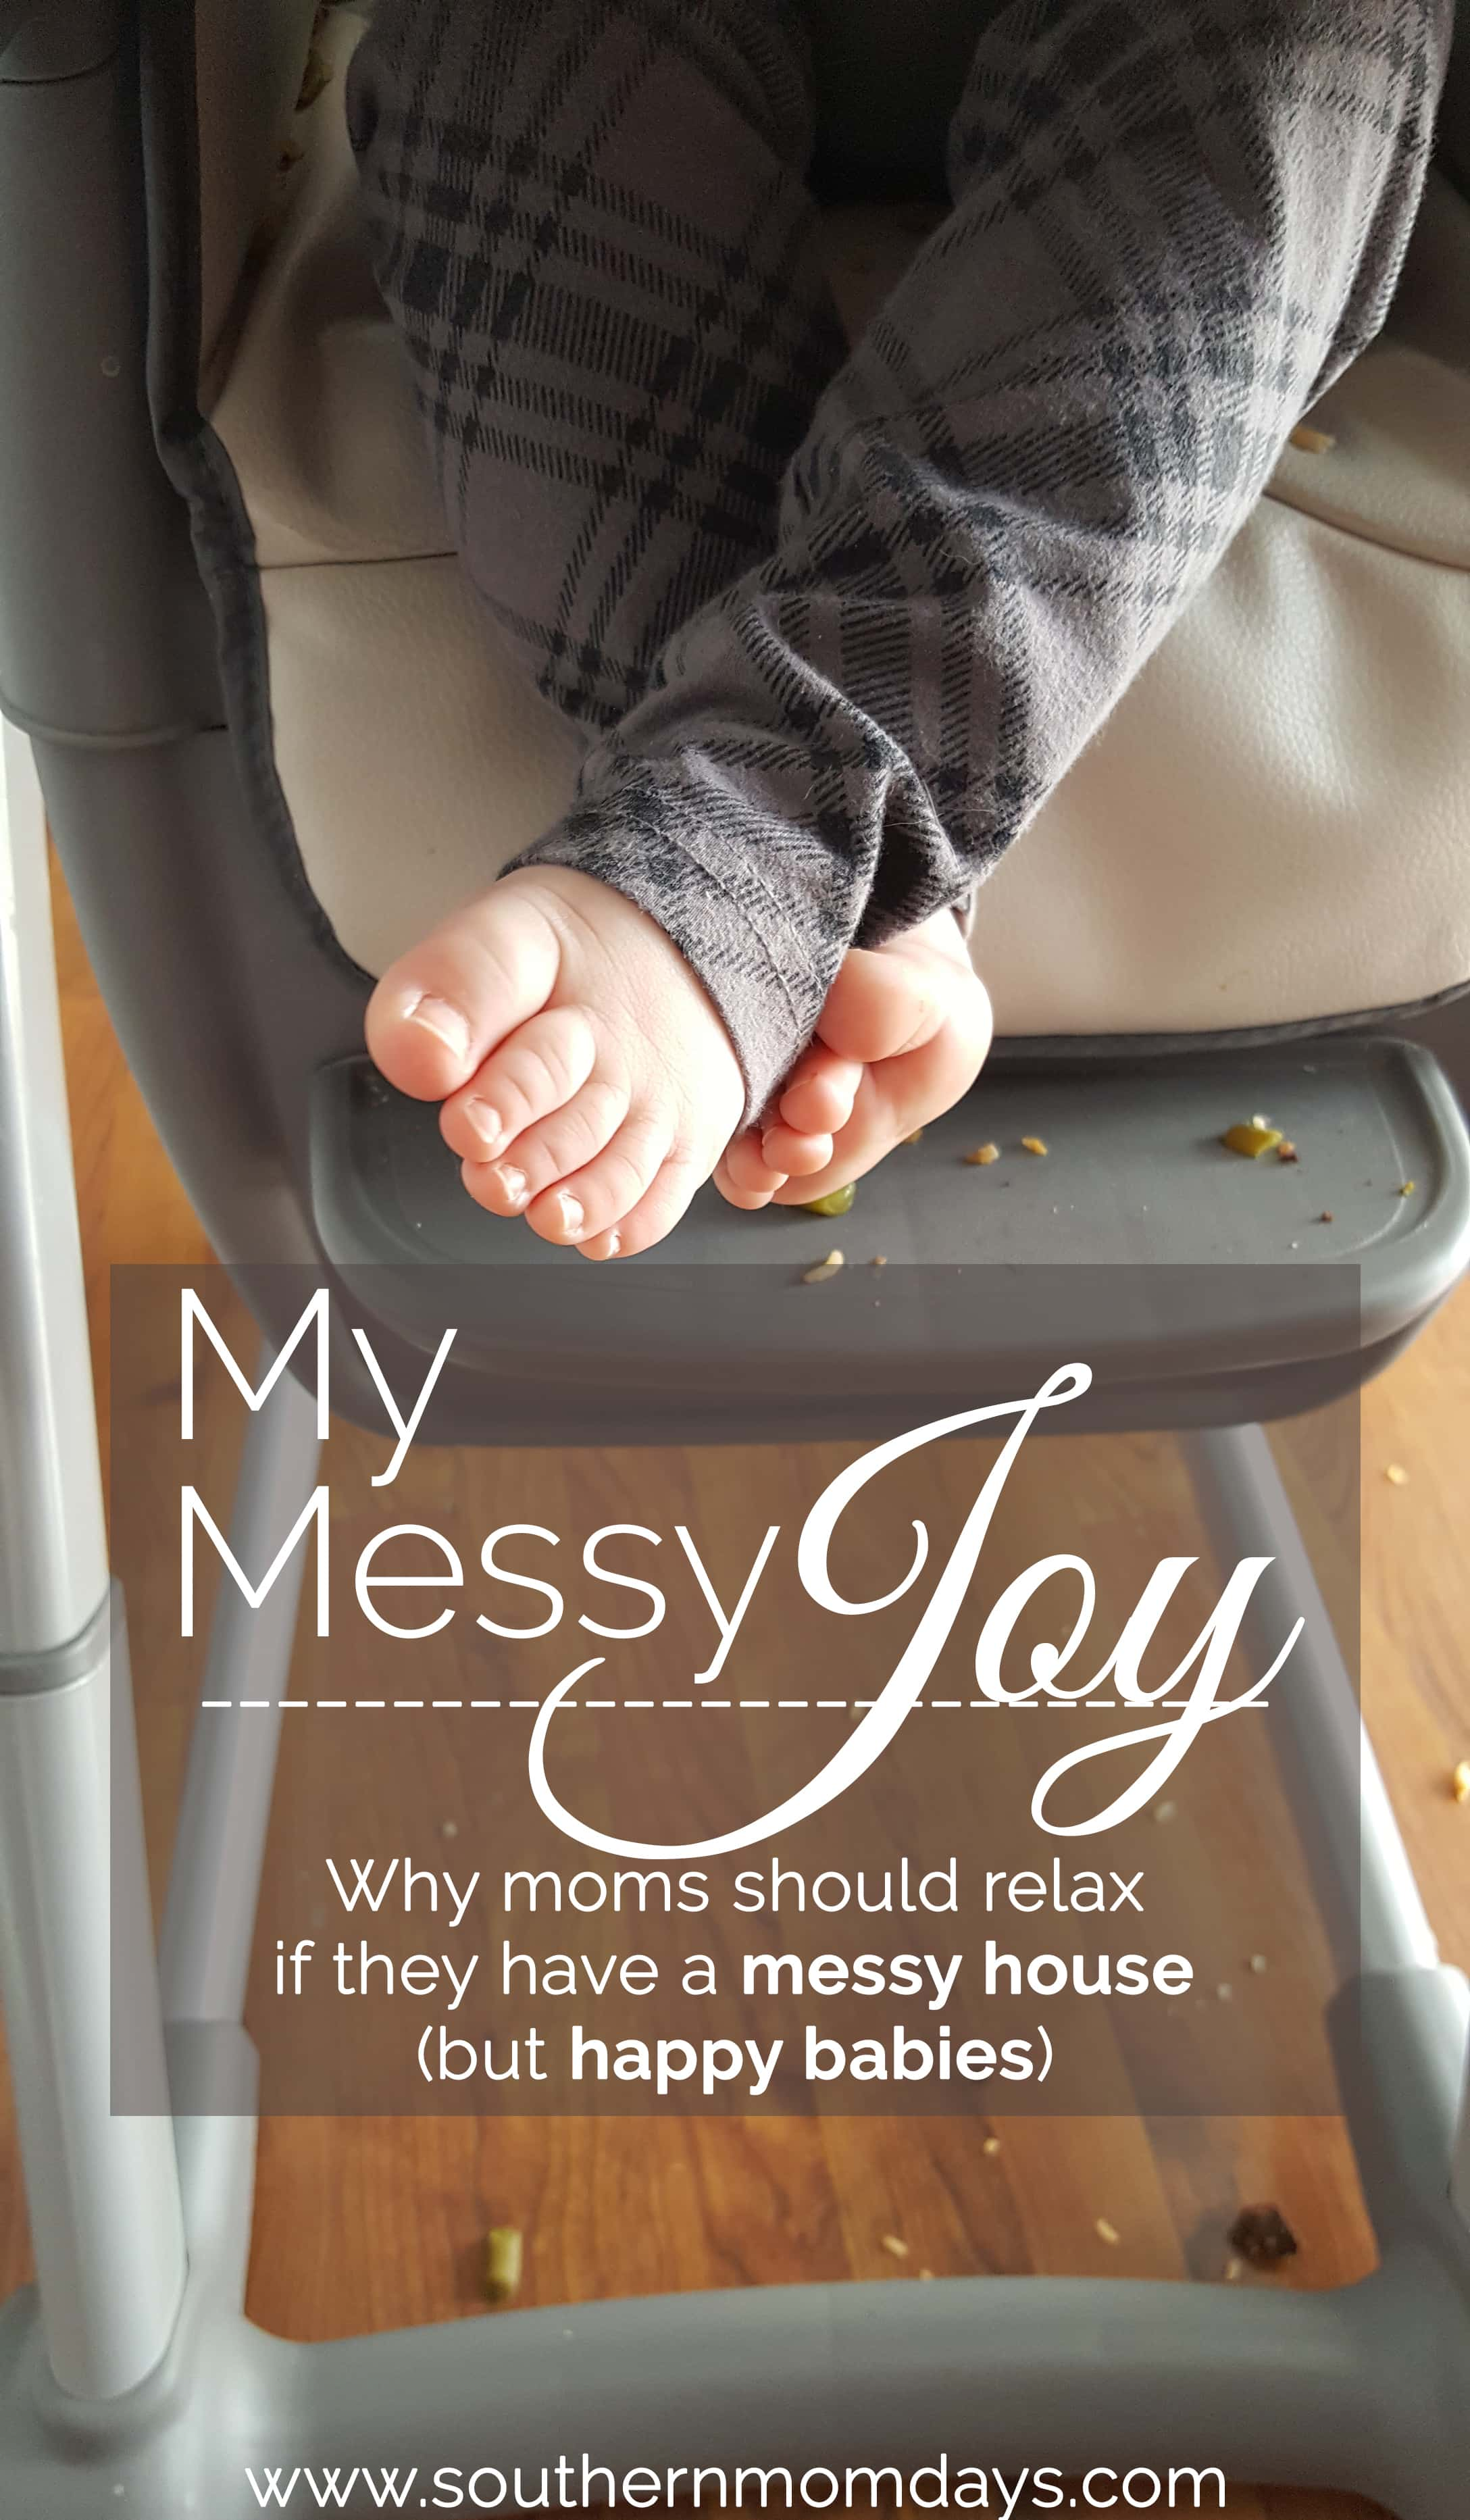 All about finding joyful motherhood in this messy momlife, featured in My Messy Joy on Southern Momdays